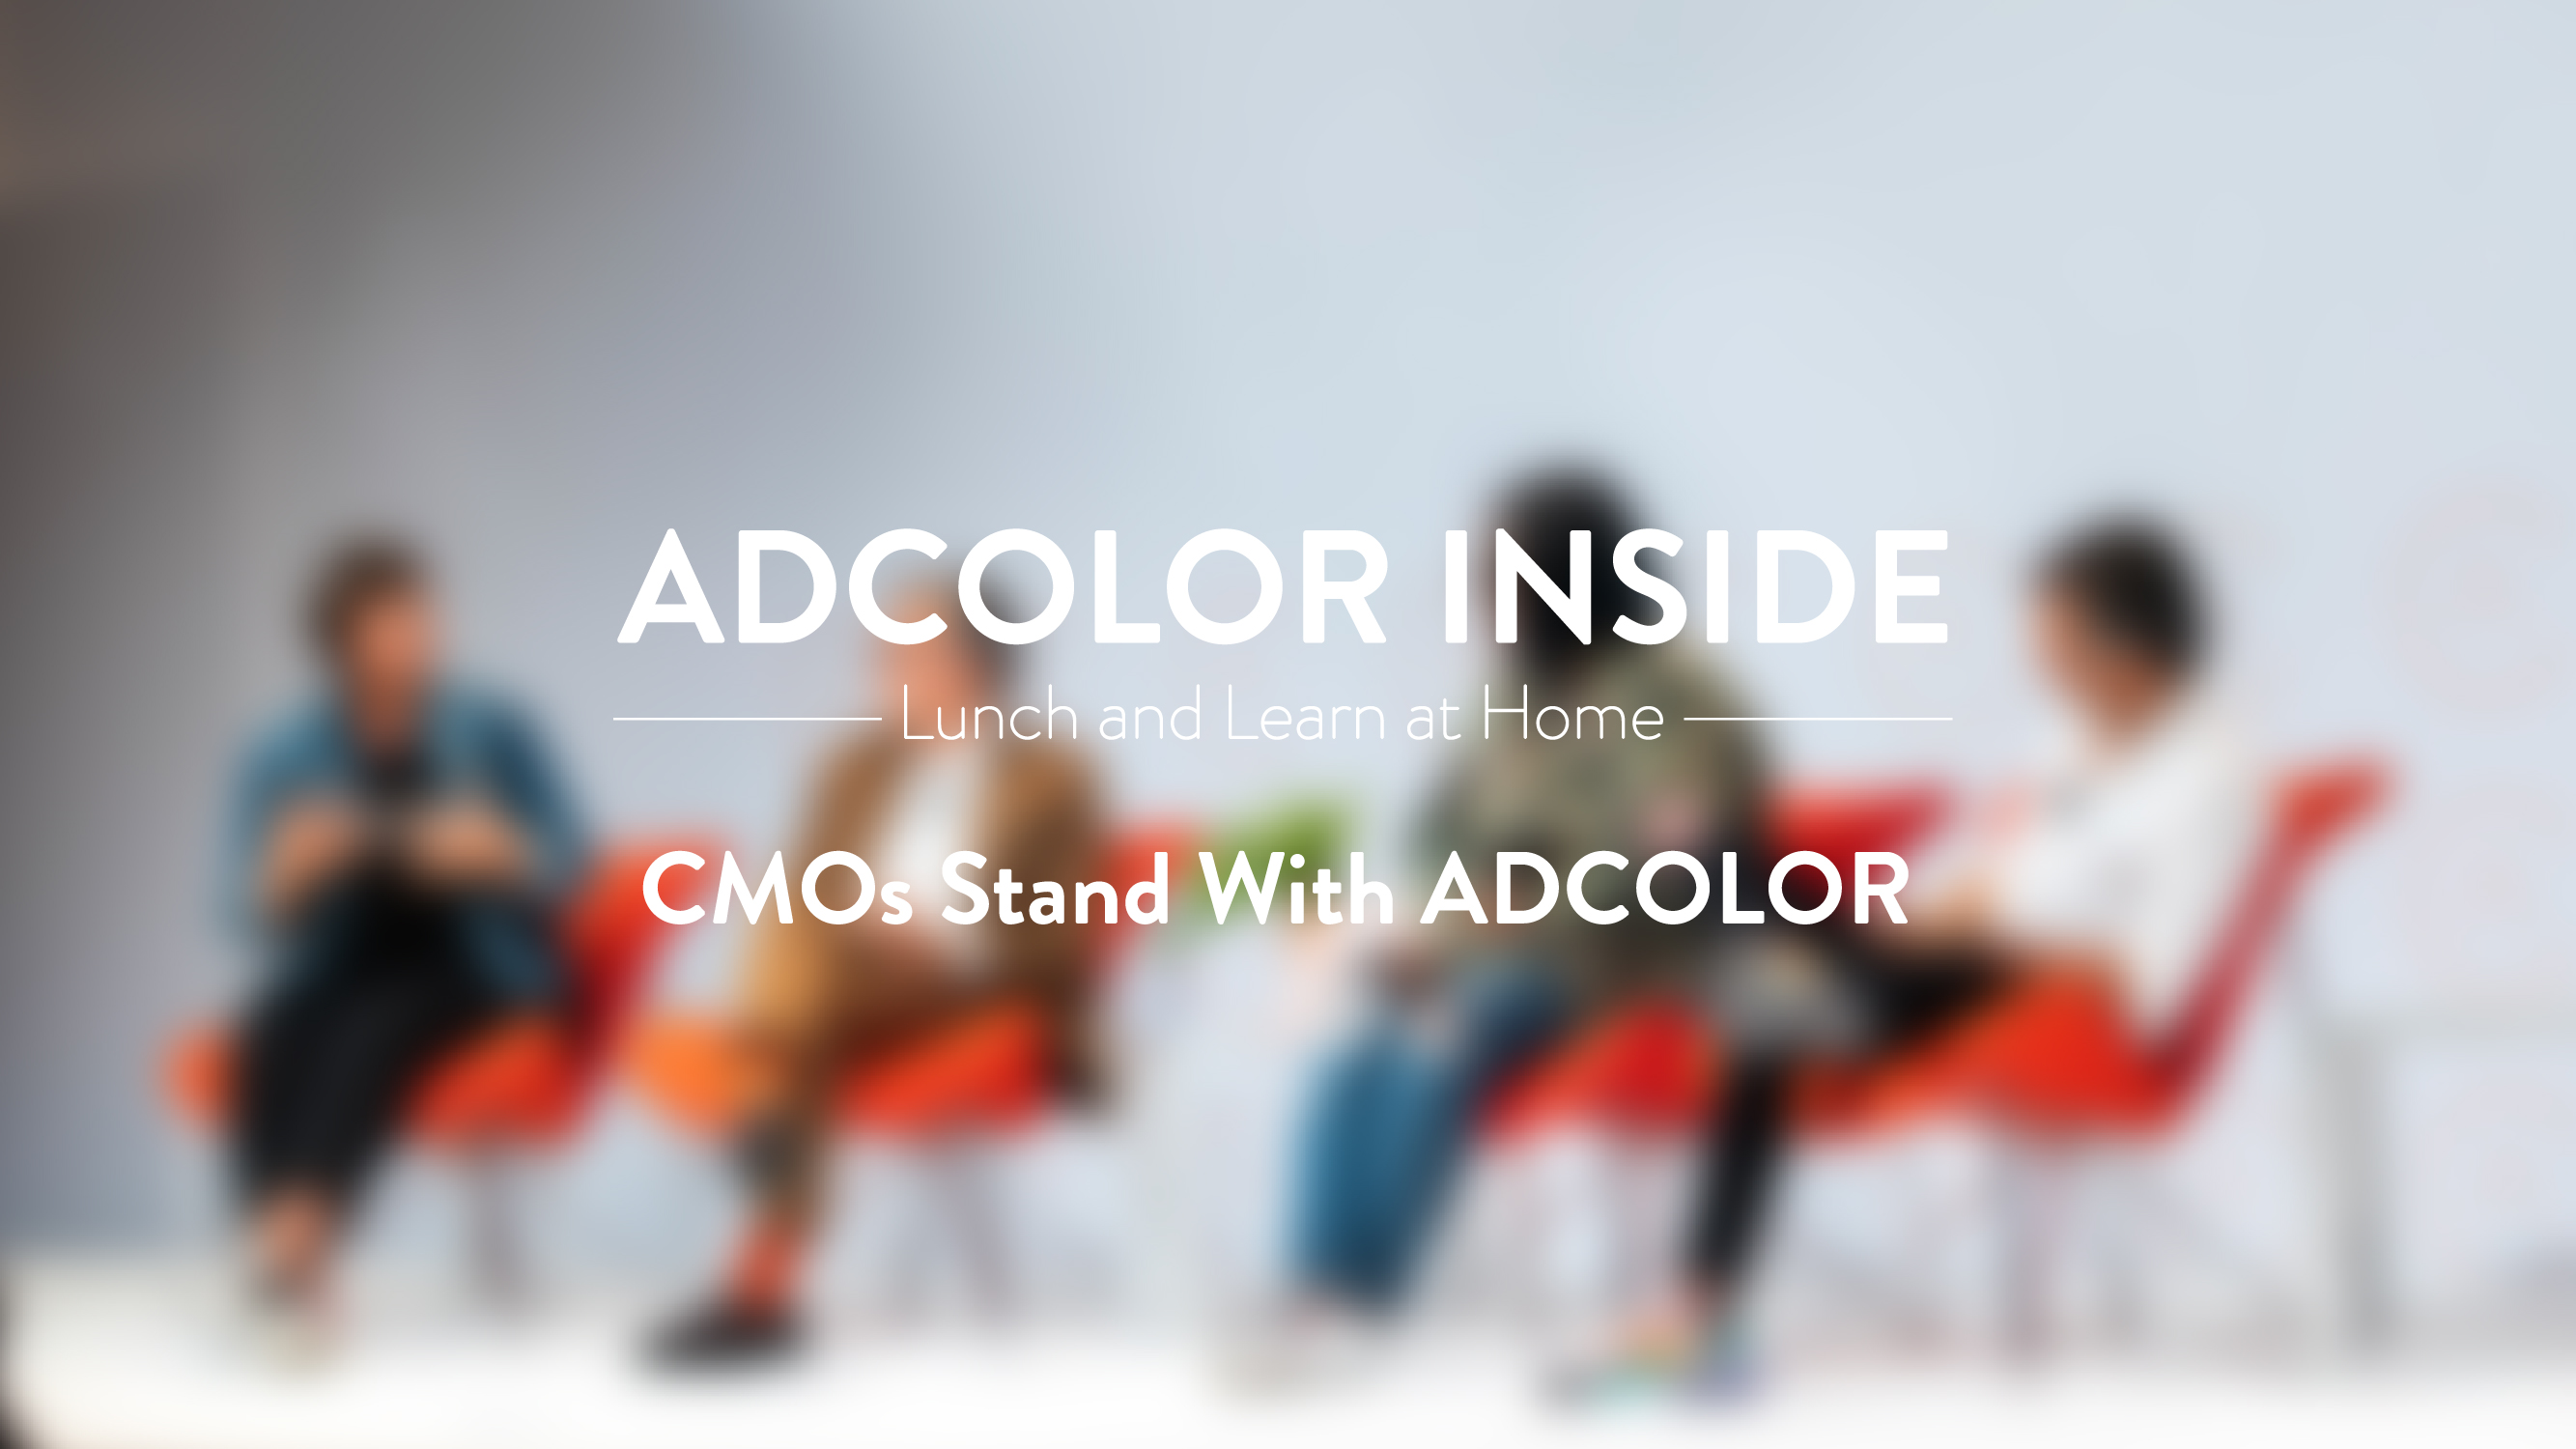 ADCOLOR Inside: CMOs Stand with ADCOLOR